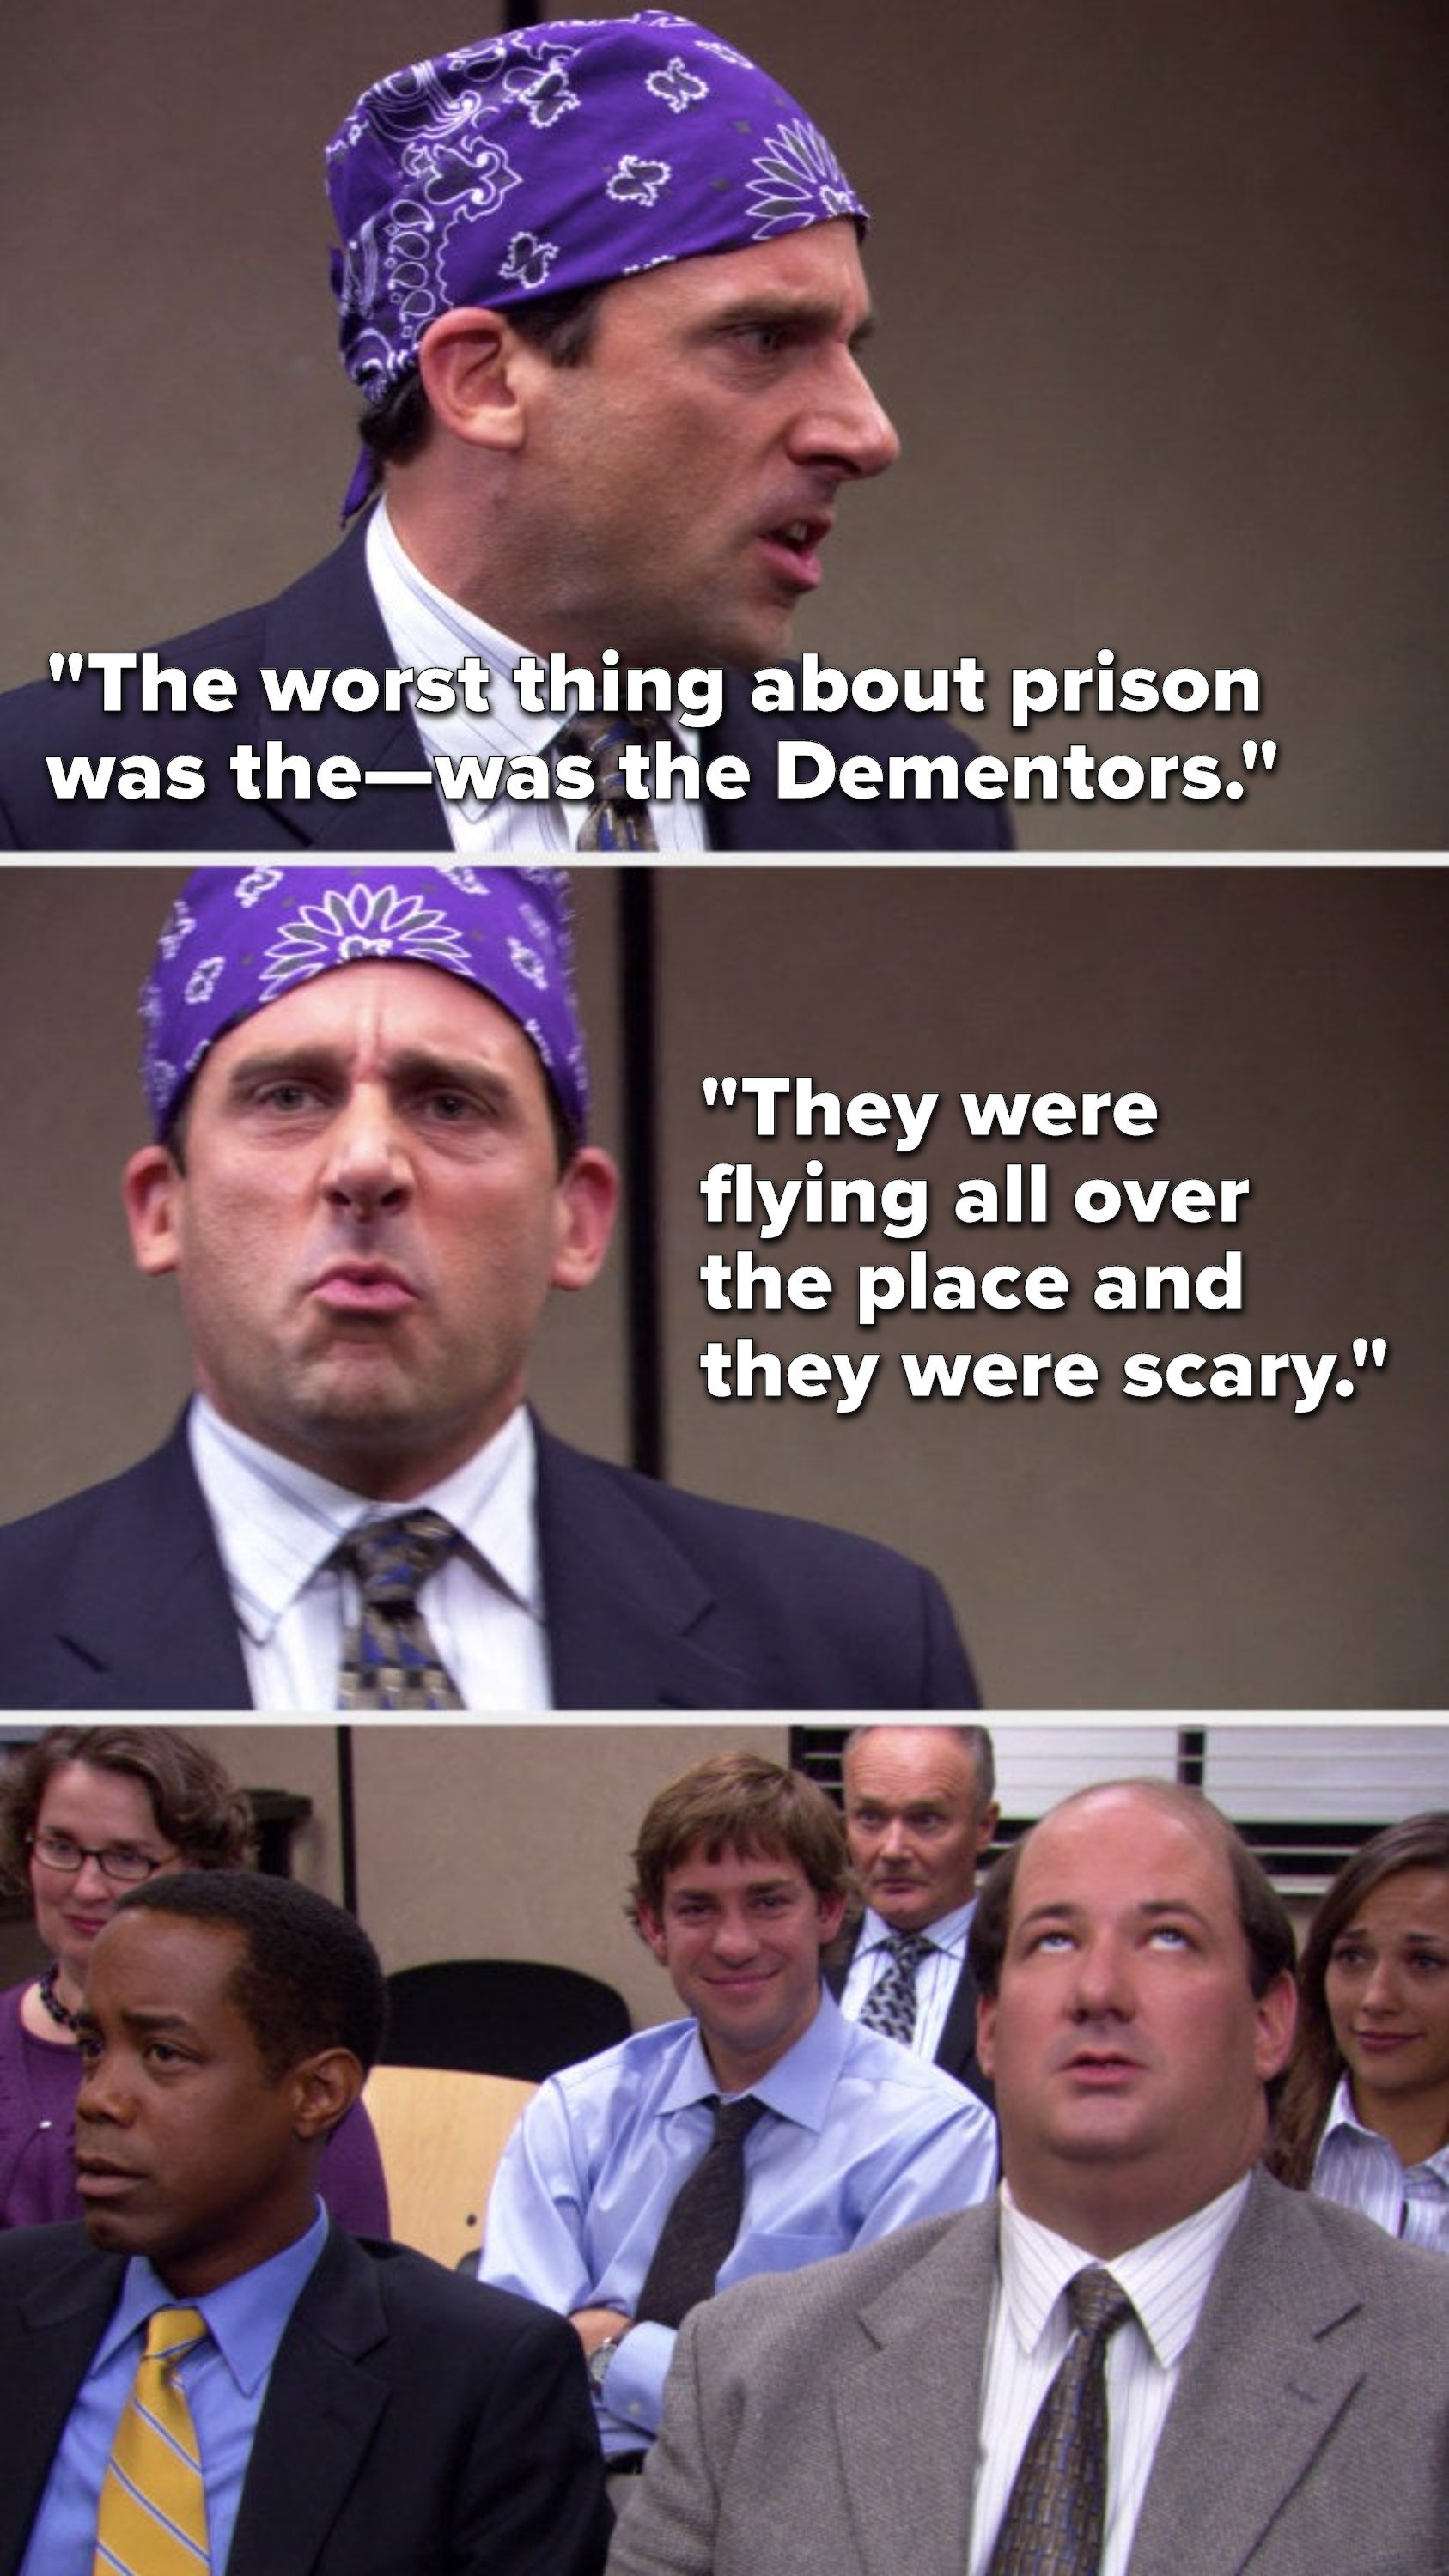 """Michael says, """"The worst thing about prison was the—was the Dementors, they were flying all over the place and they were scary"""""""